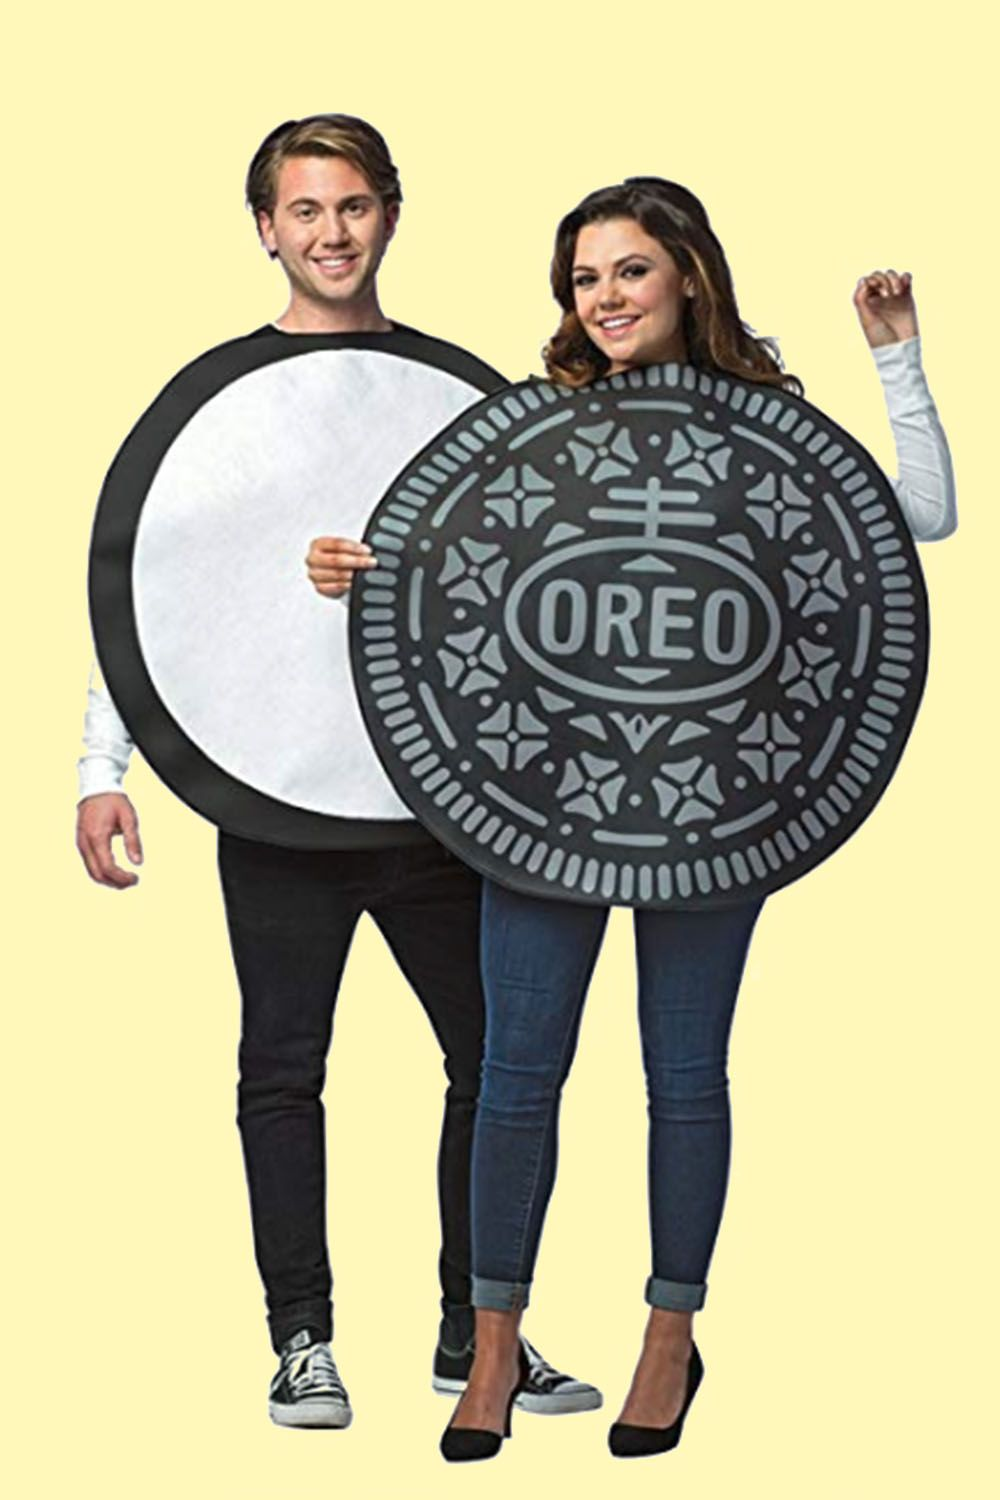 orea couples costume  sc 1 st  Good Housekeeping & 50+ Cute Halloween Costumes for Couples 2018 - Best Ideas for ...